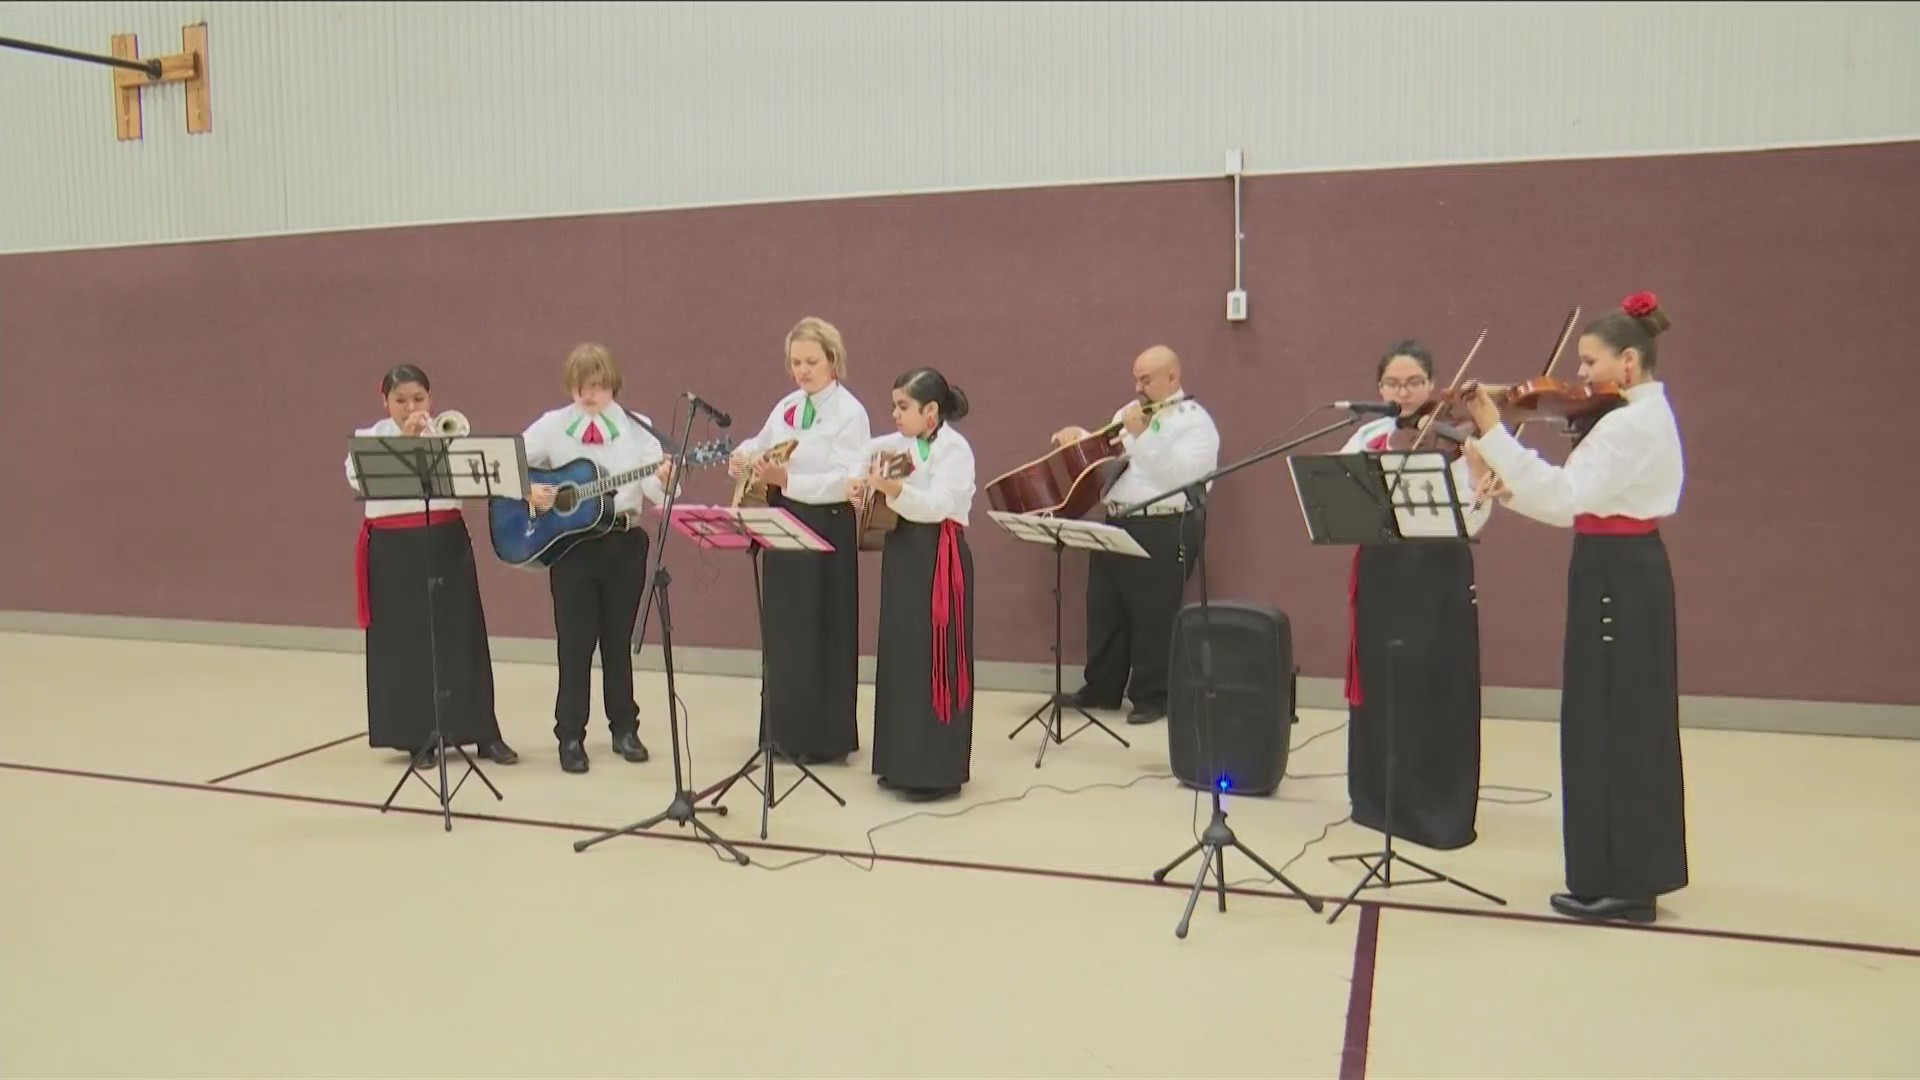 Middle school and high school students form Mariachi band